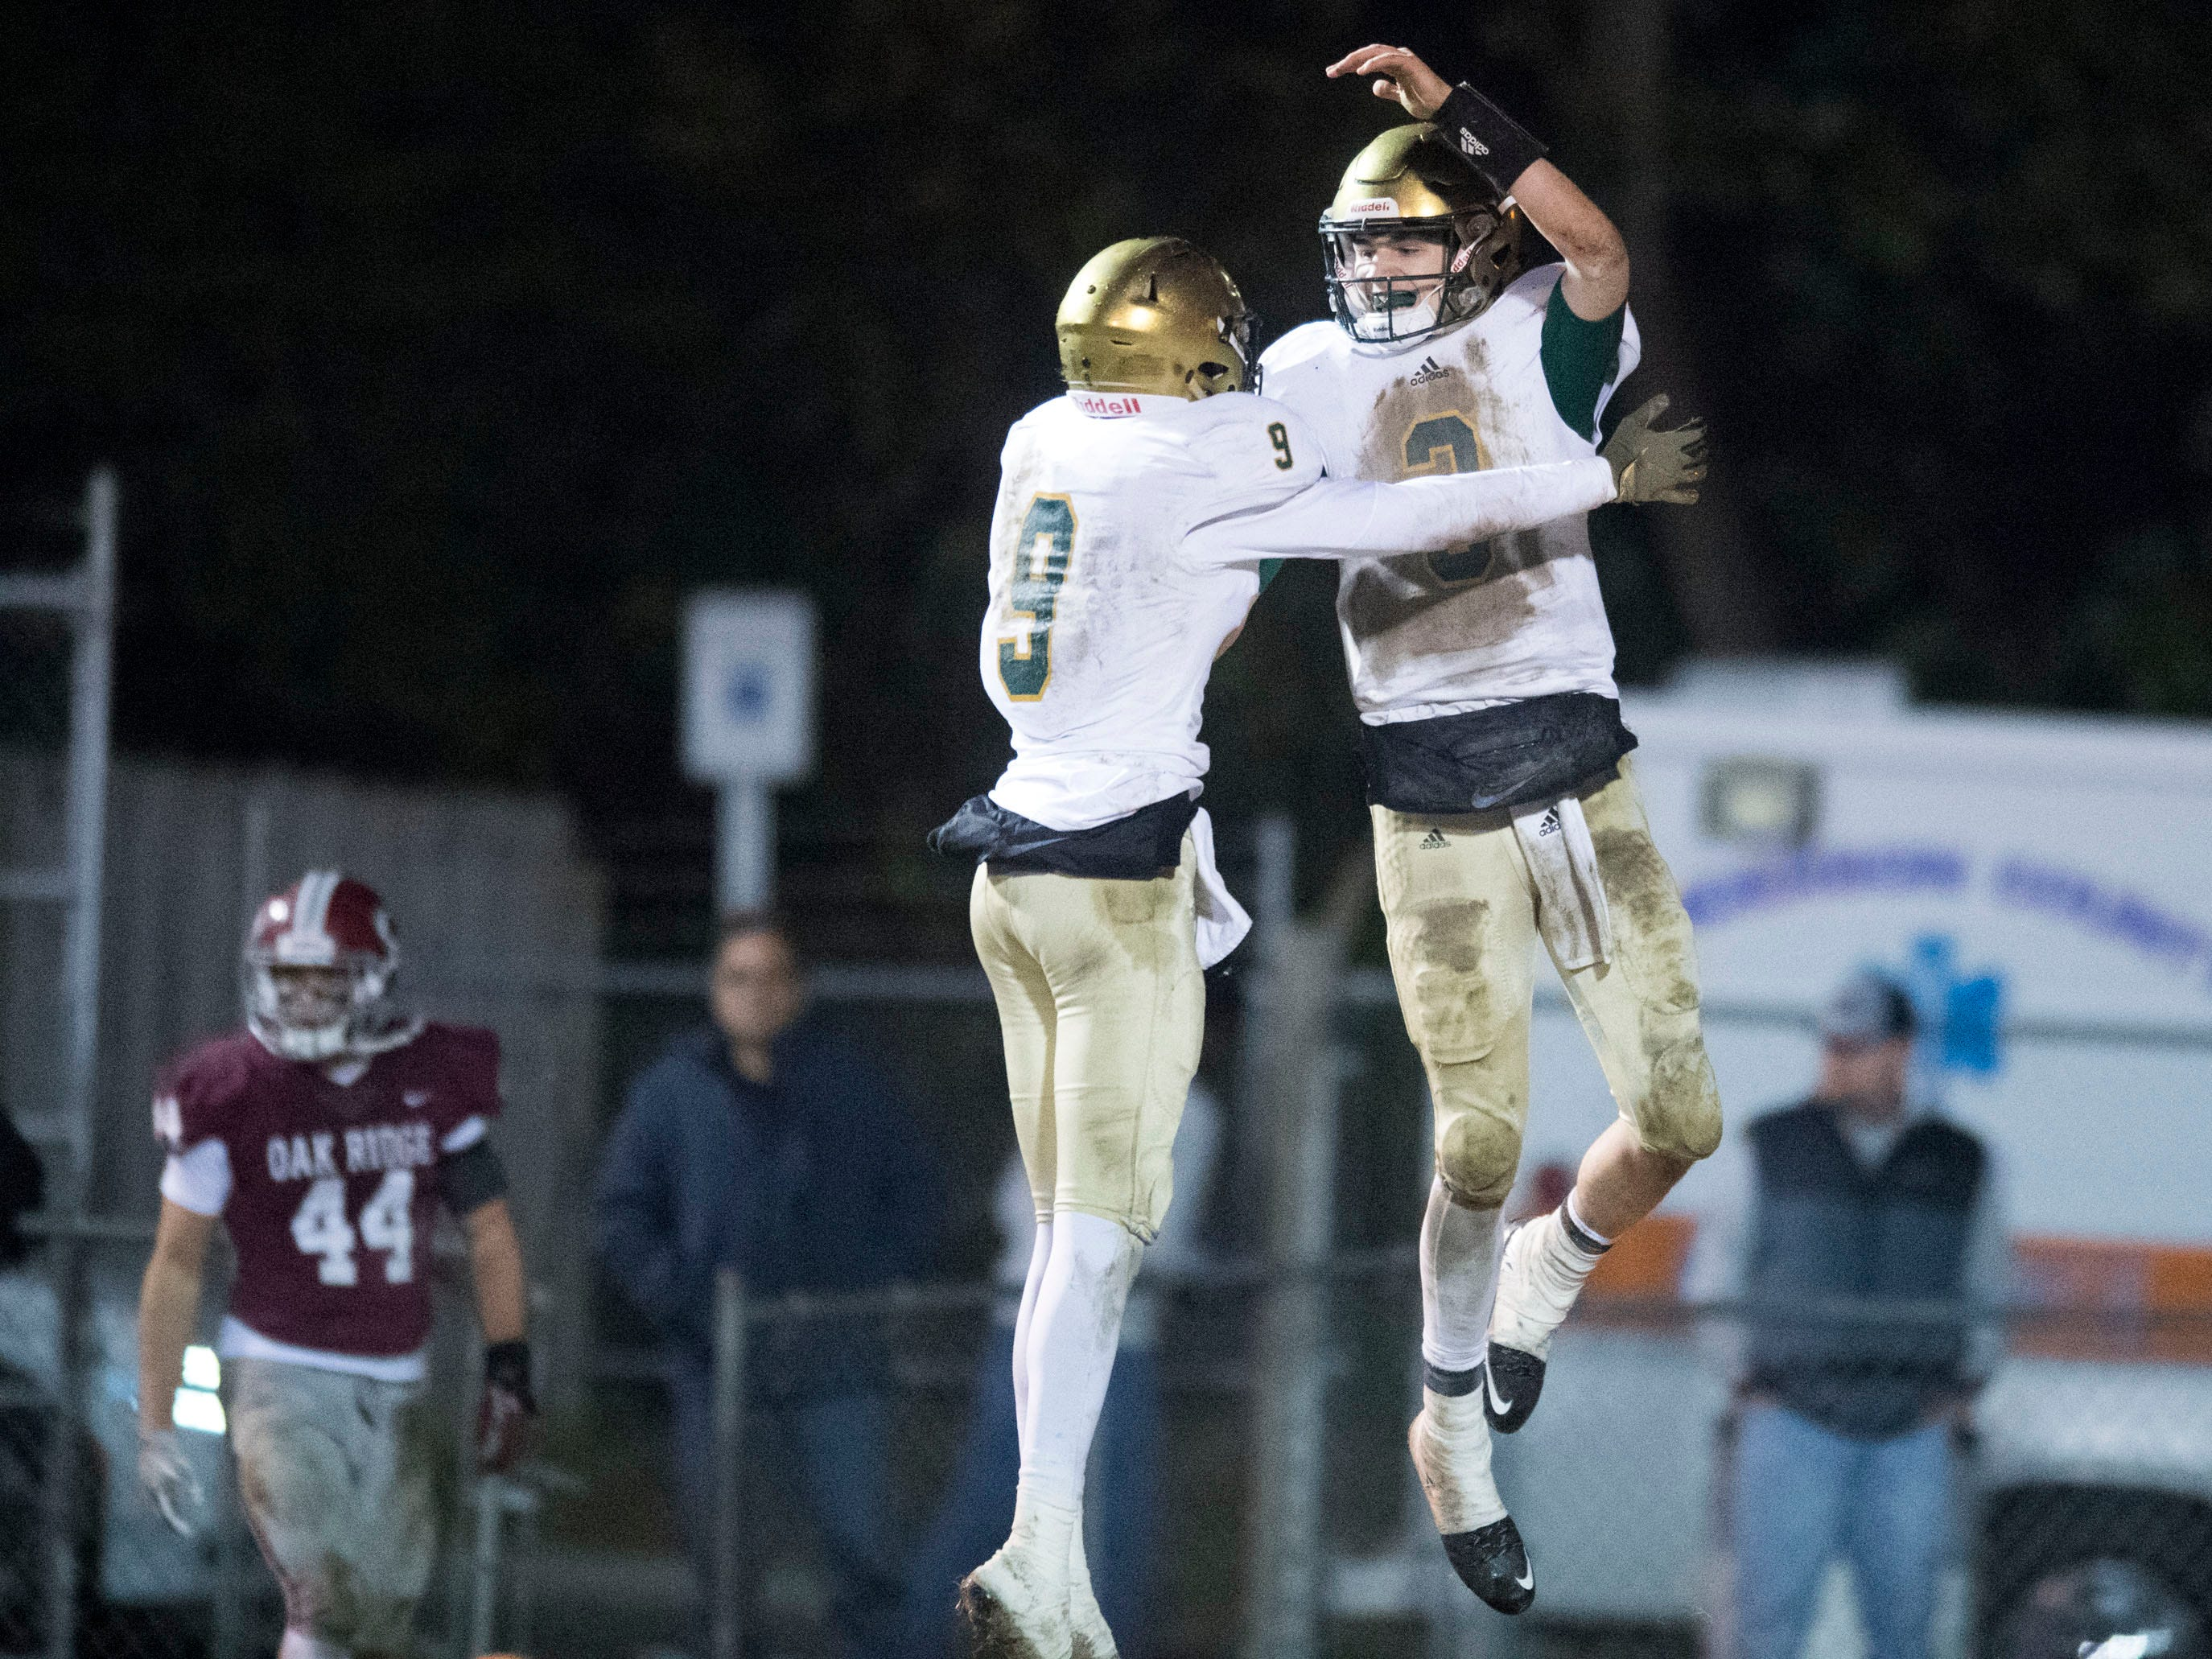 Knoxville Catholic's Adam Jones (9) and Jack Jancek (3) celebrate after Jancek scored a touchdown. Knoxville Catholic defeats Oak Ridge, 42-40 in the 5A quarterfinals on Friday, November 16, 2018.